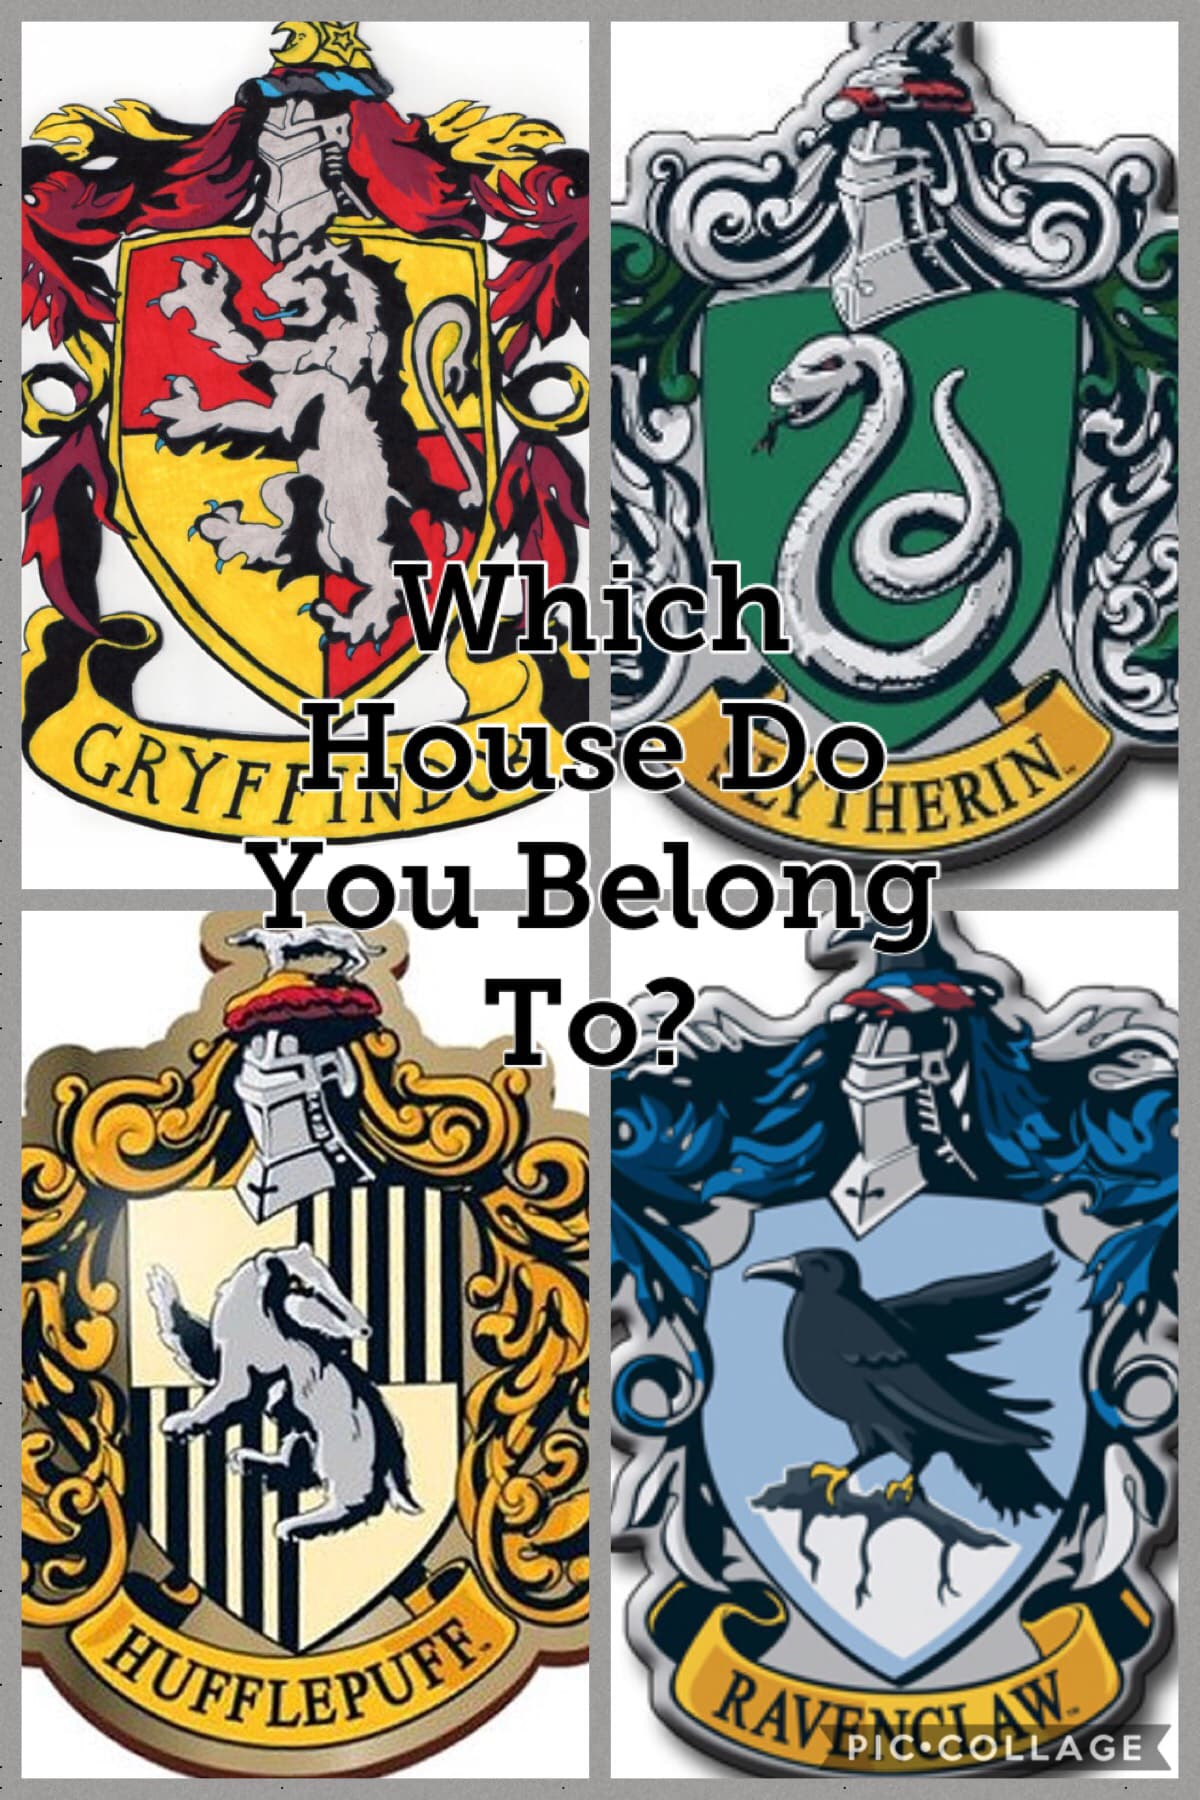 Comment which house u r in!! if u don't know and r a harry potter fan, take an online quiz now!⚡️